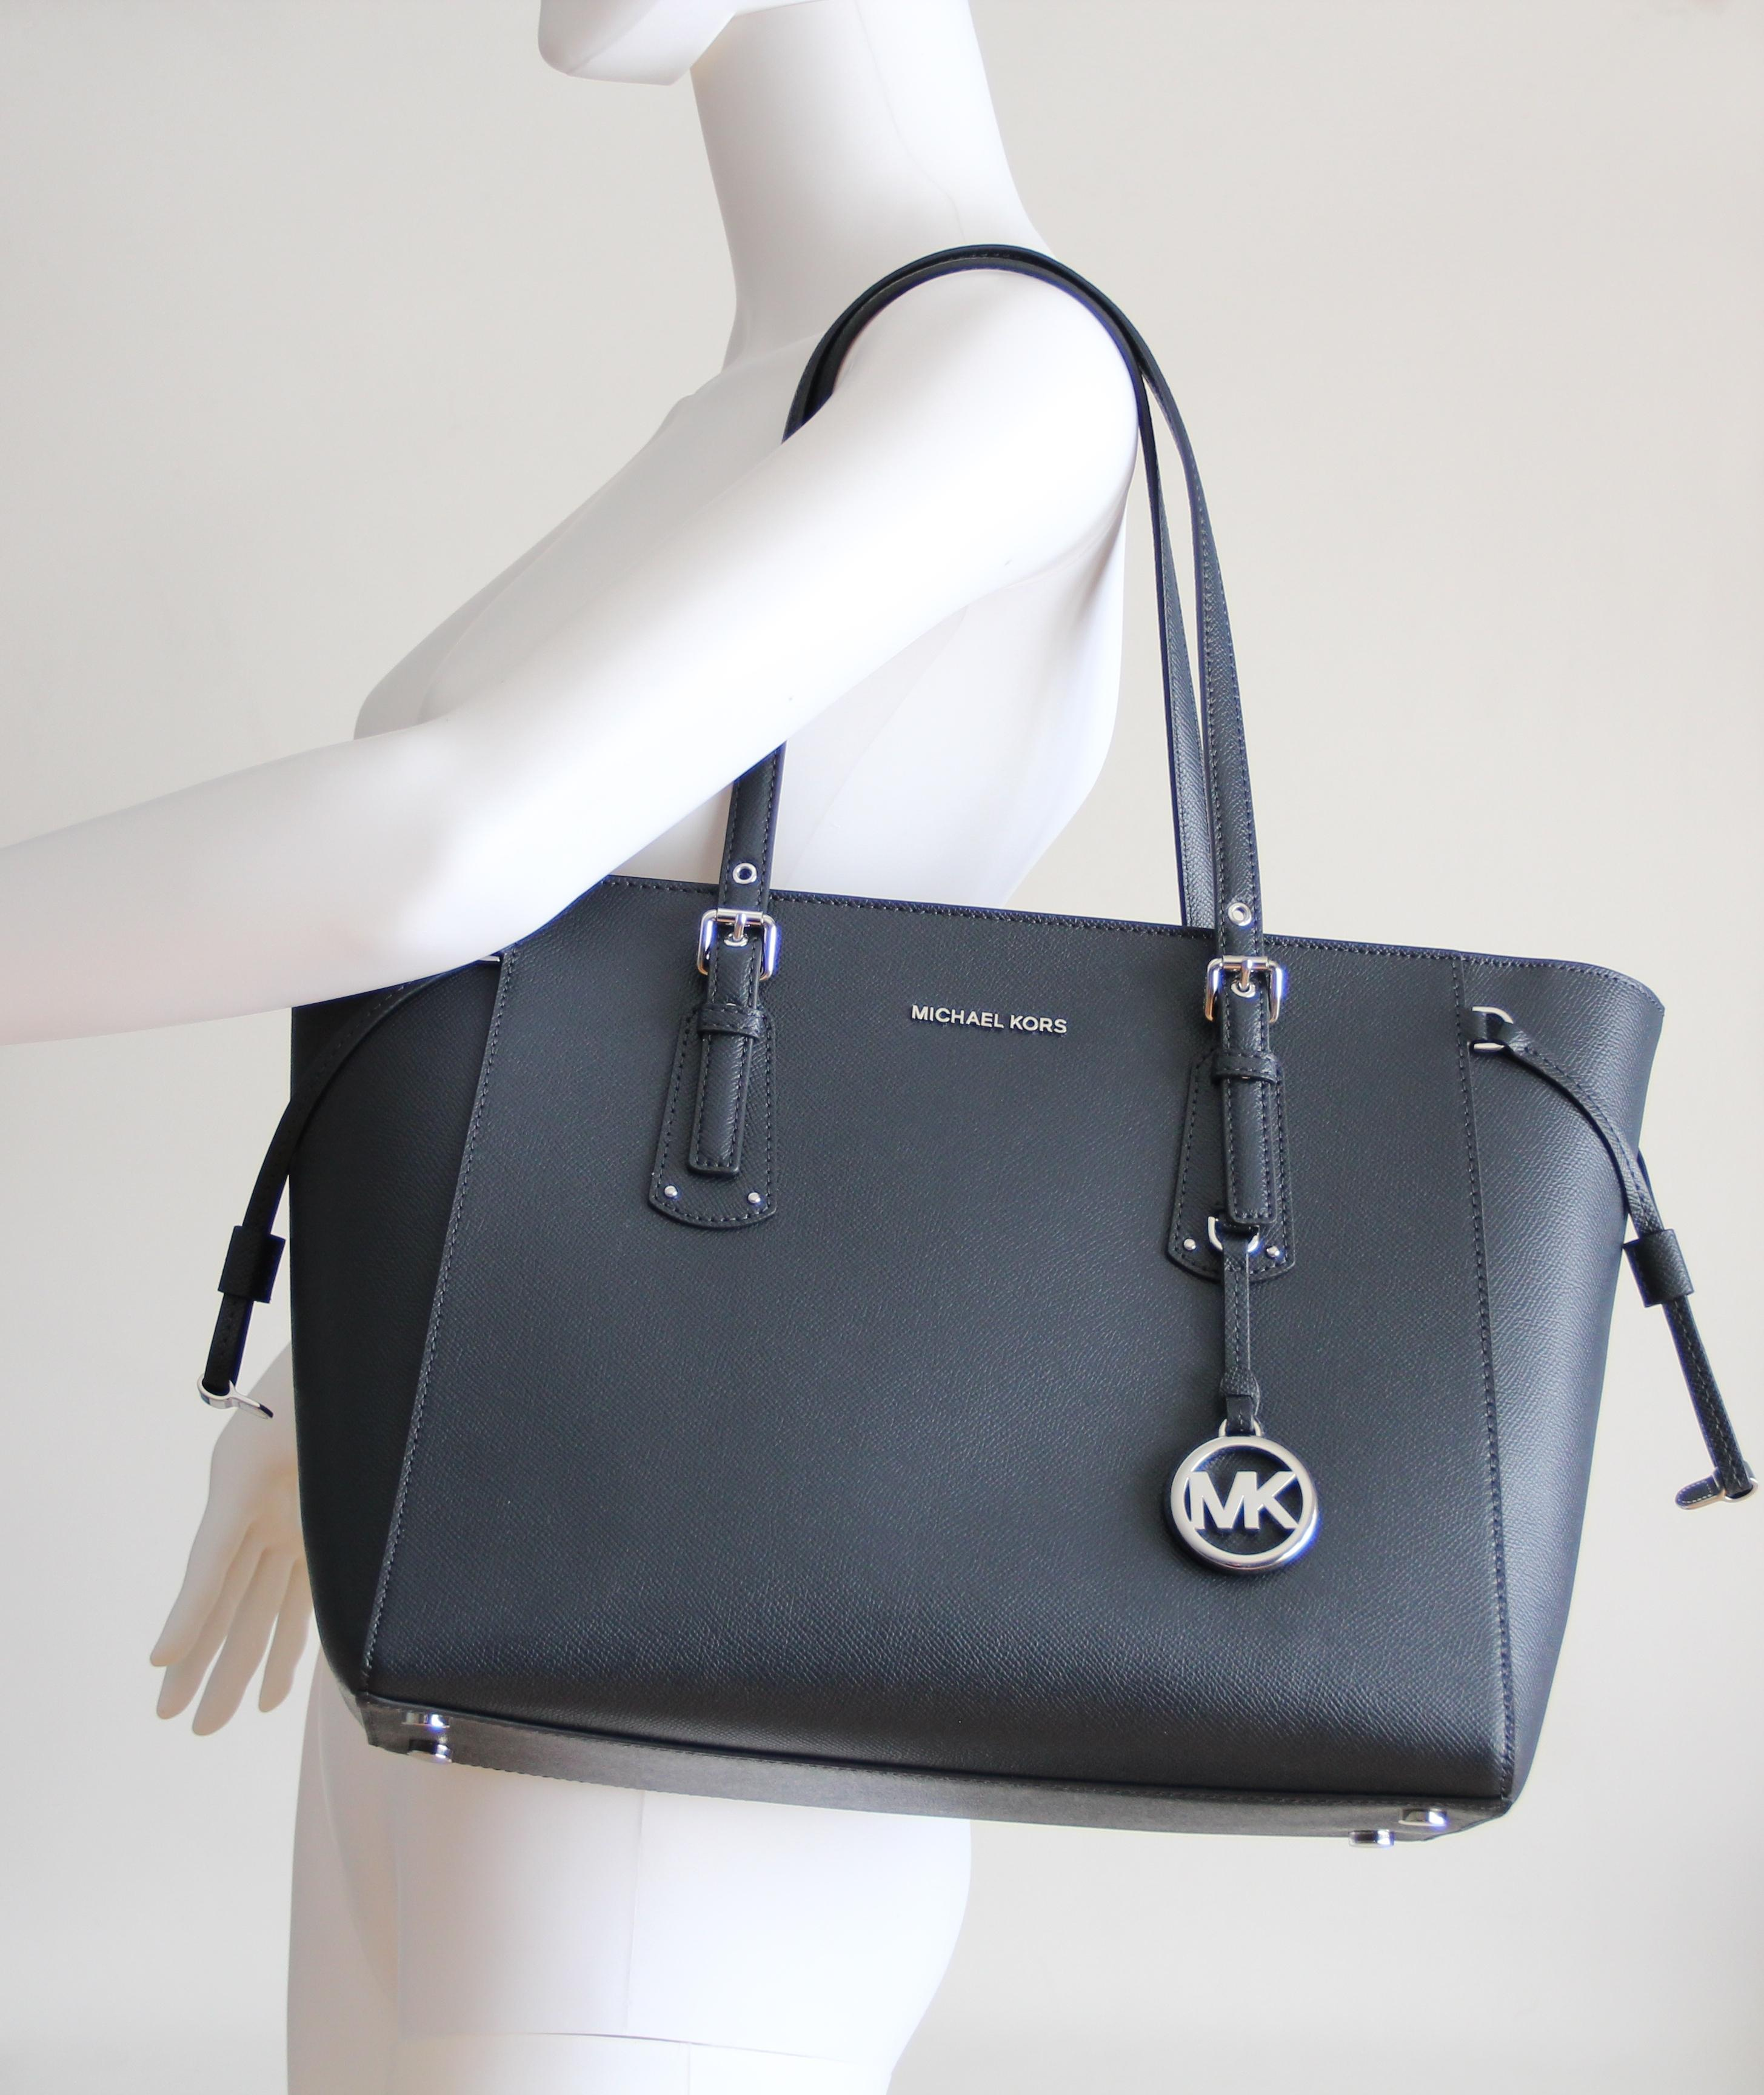 0fd710c0c40e ... coupon code michael kors multifunction leather voyager tote in blue.  123456789101112 425c5 e0032